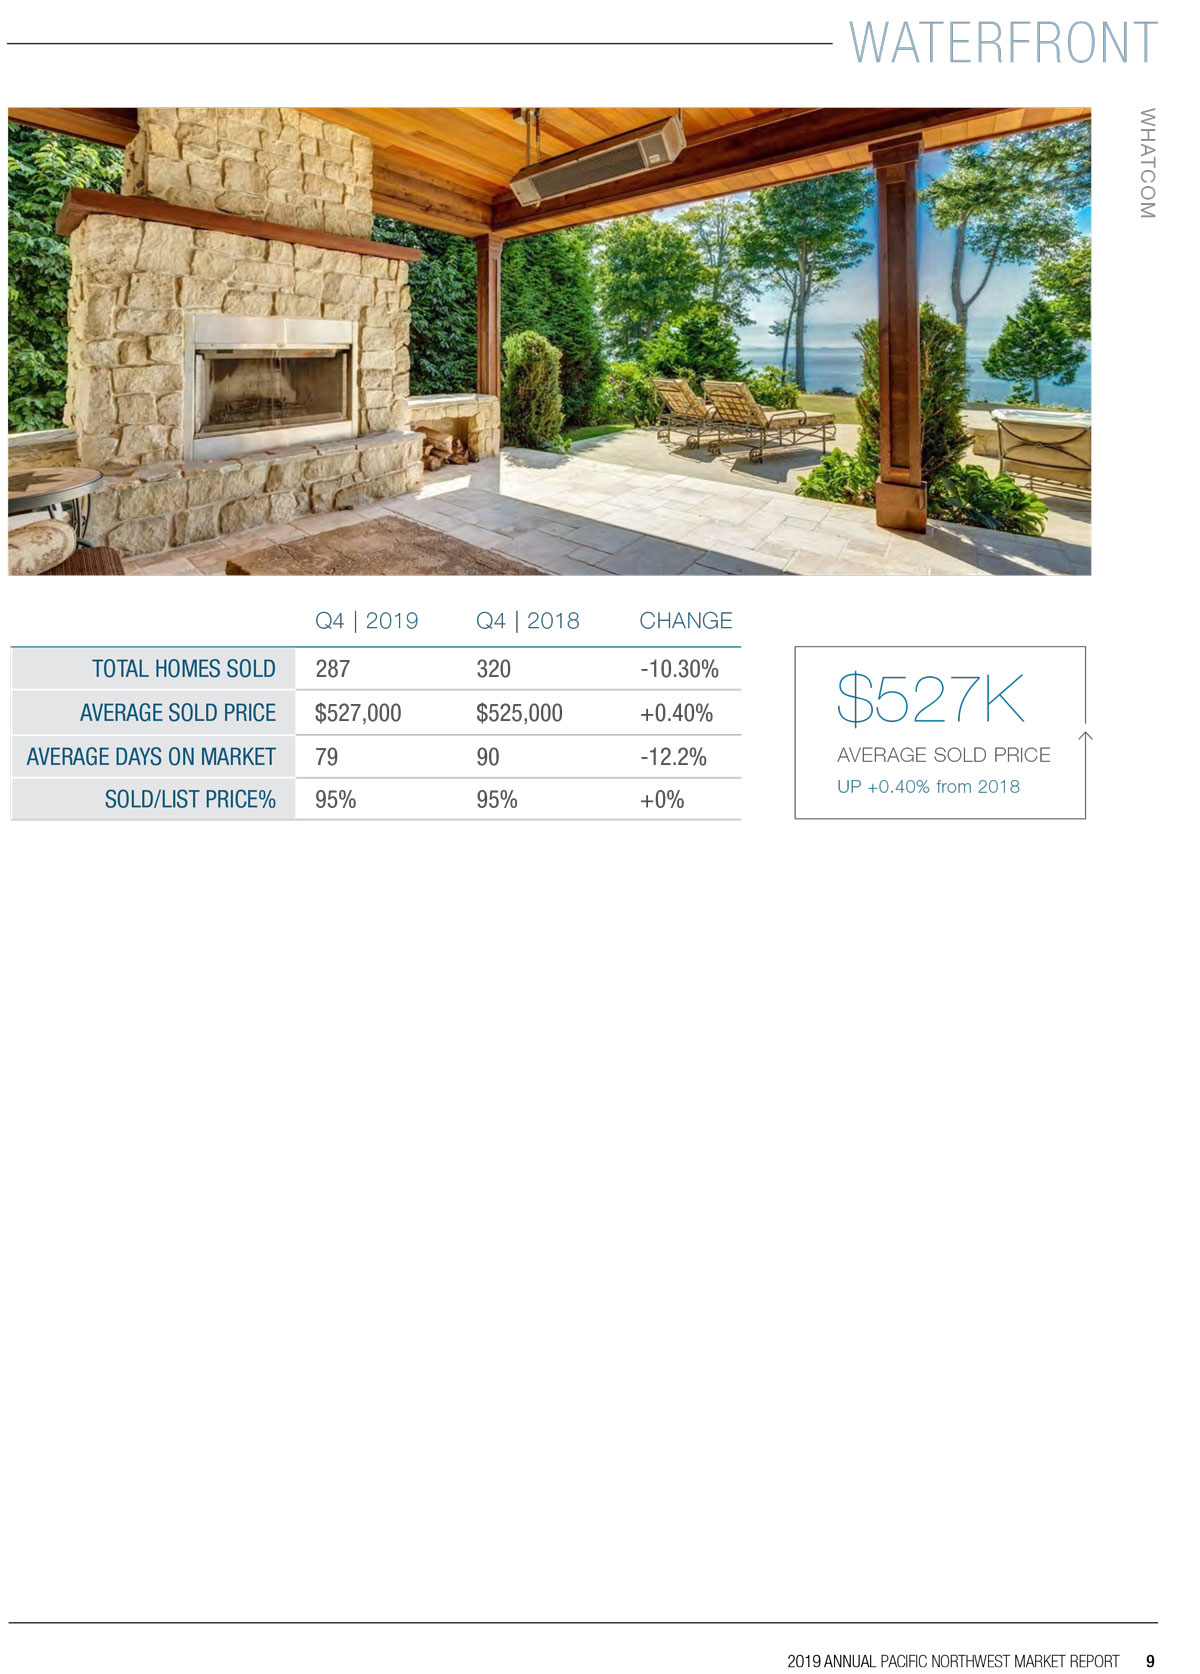 2019 Waterfront Market Report Page 5